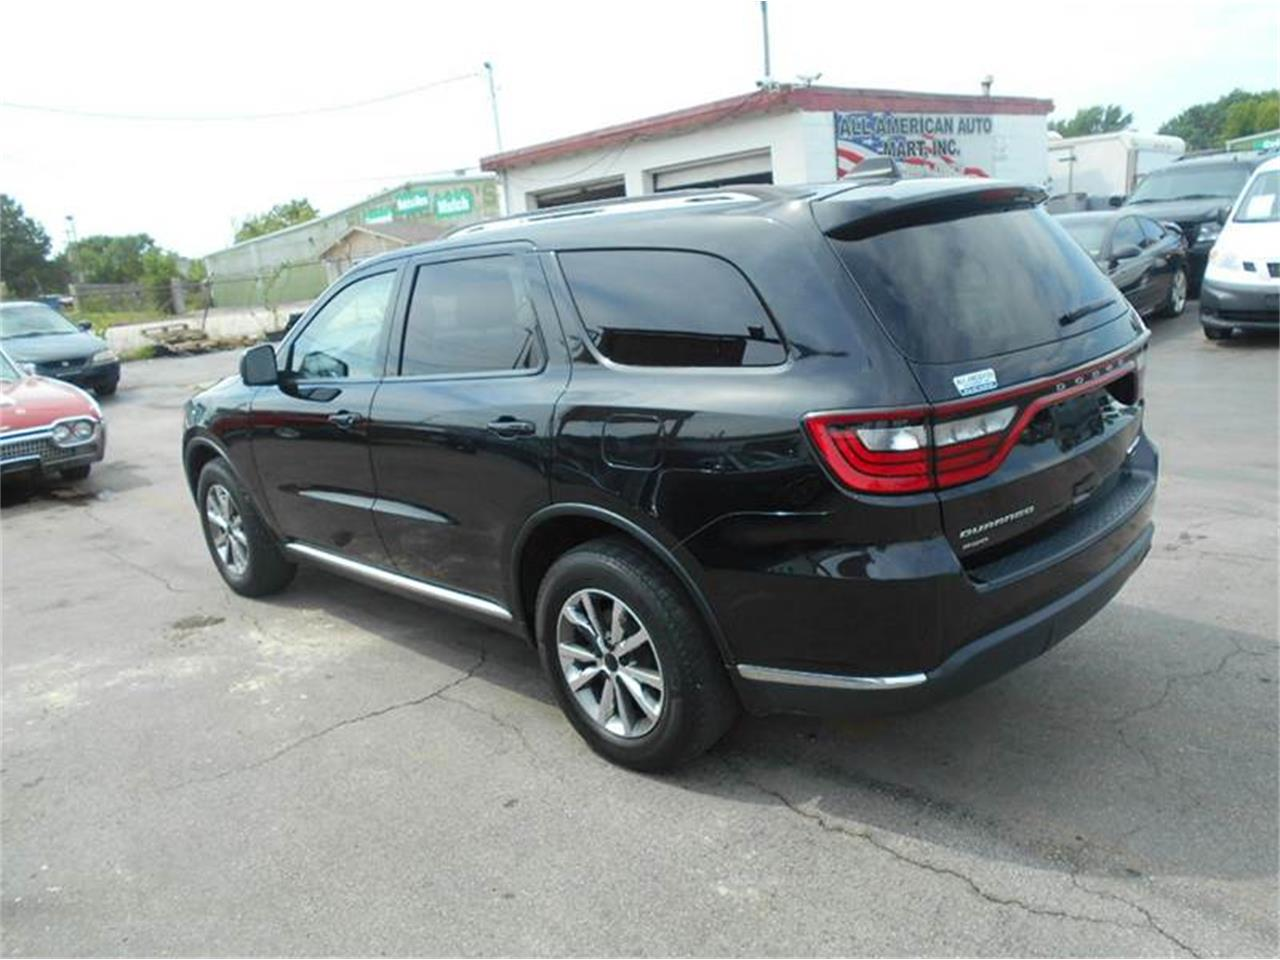 Large Picture of 2014 Dodge Durango located in Kansas - $24,980.00 - LHAR